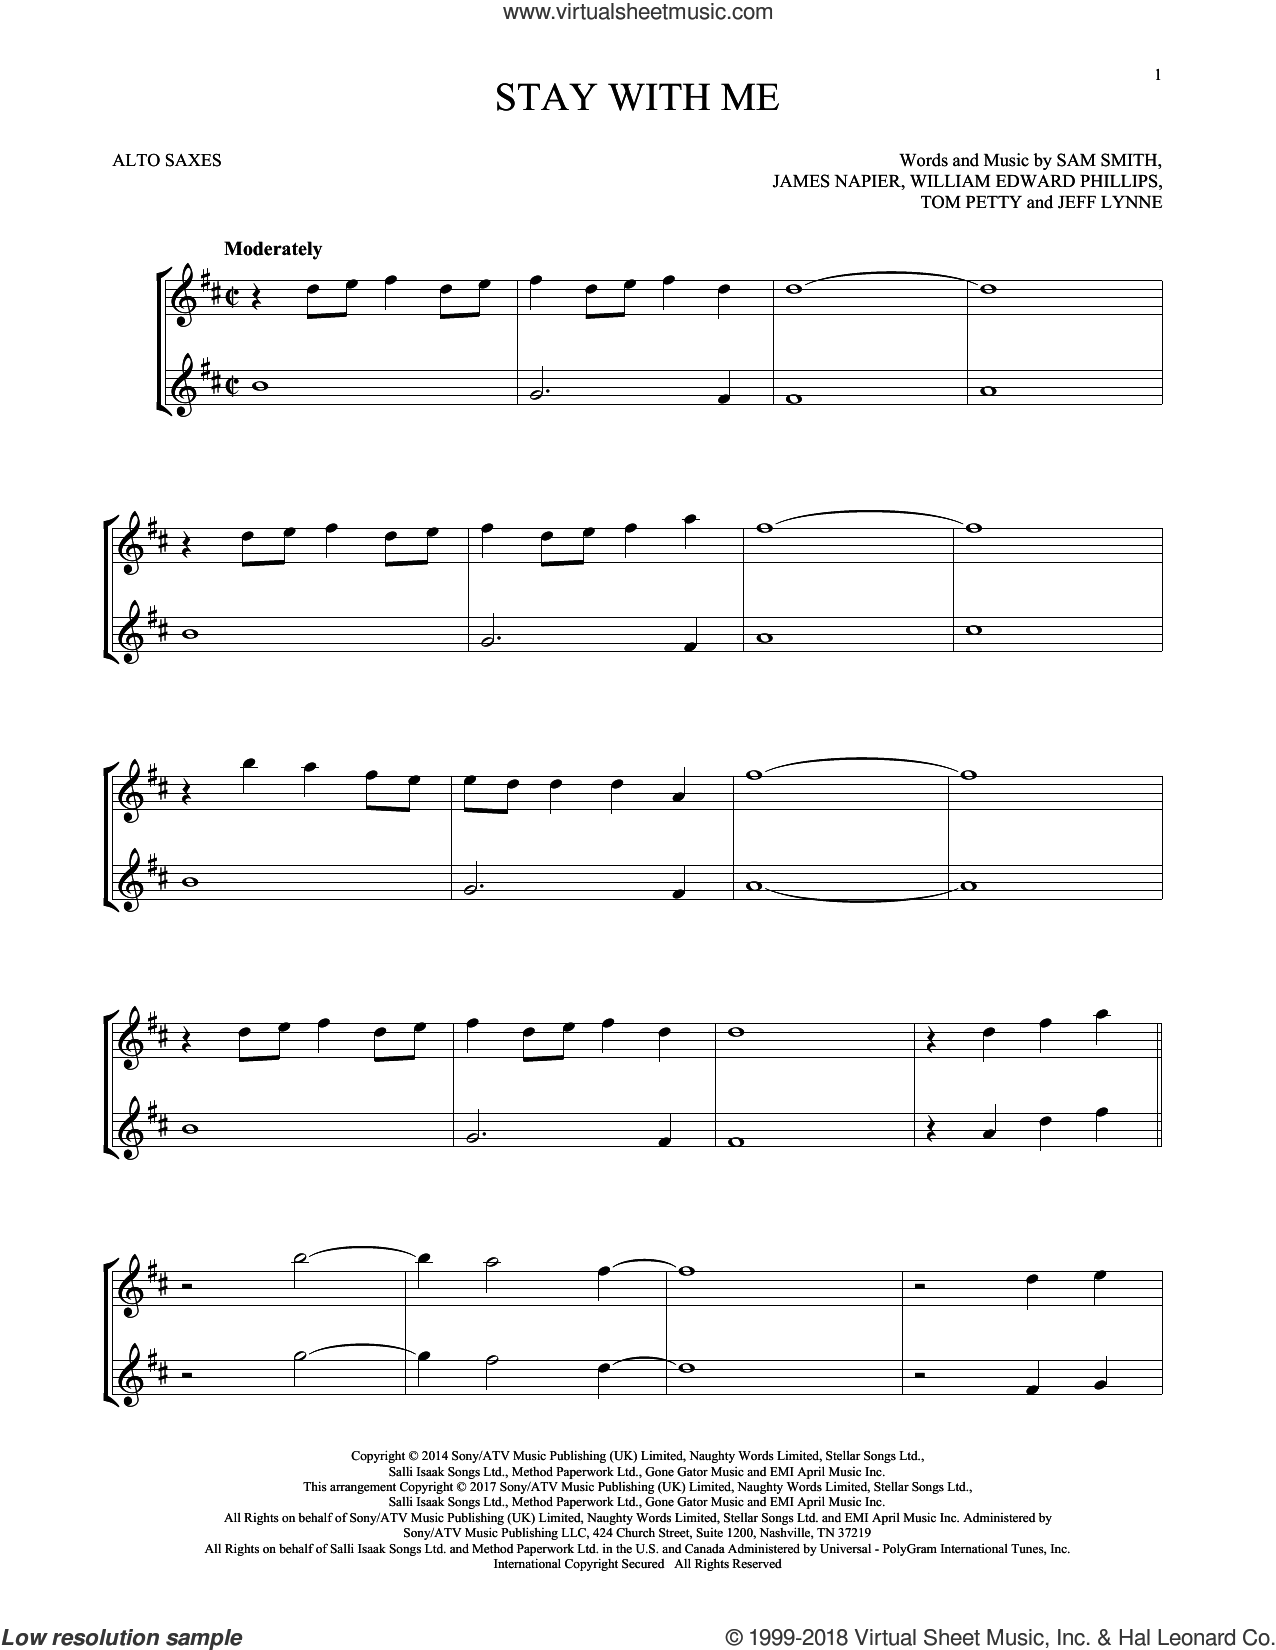 Stay With Me sheet music for two alto saxophones (duets) by Sam Smith, James Napier, Jeff Lynne, Tom Petty and William Edward Phillips, intermediate skill level